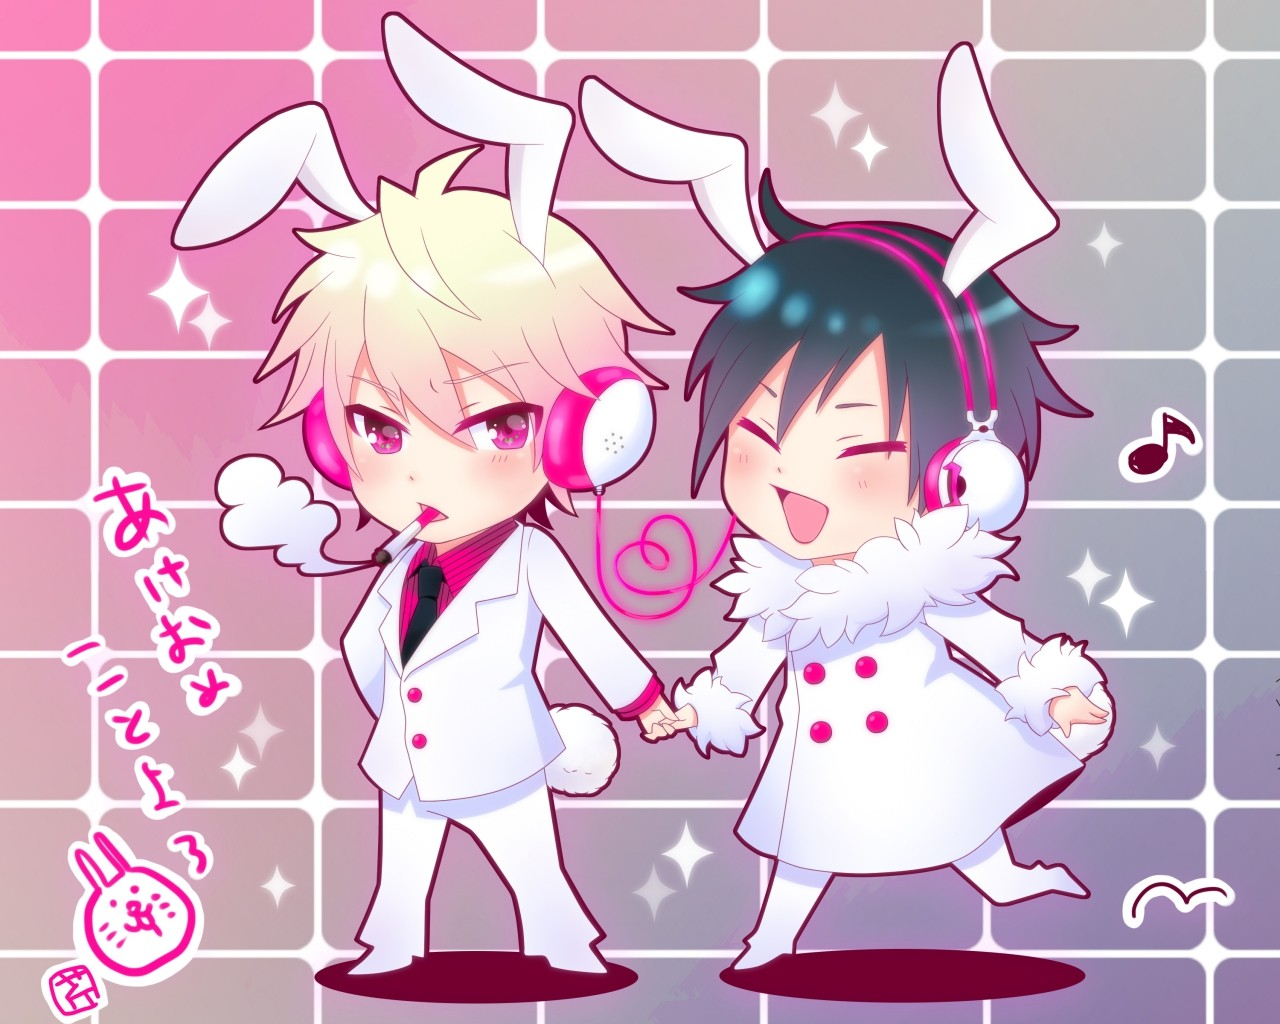 Chibi Yaoi Wallpaper 1280x1024 Chibi Yaoi Animal Ears Durarara 1280x1024